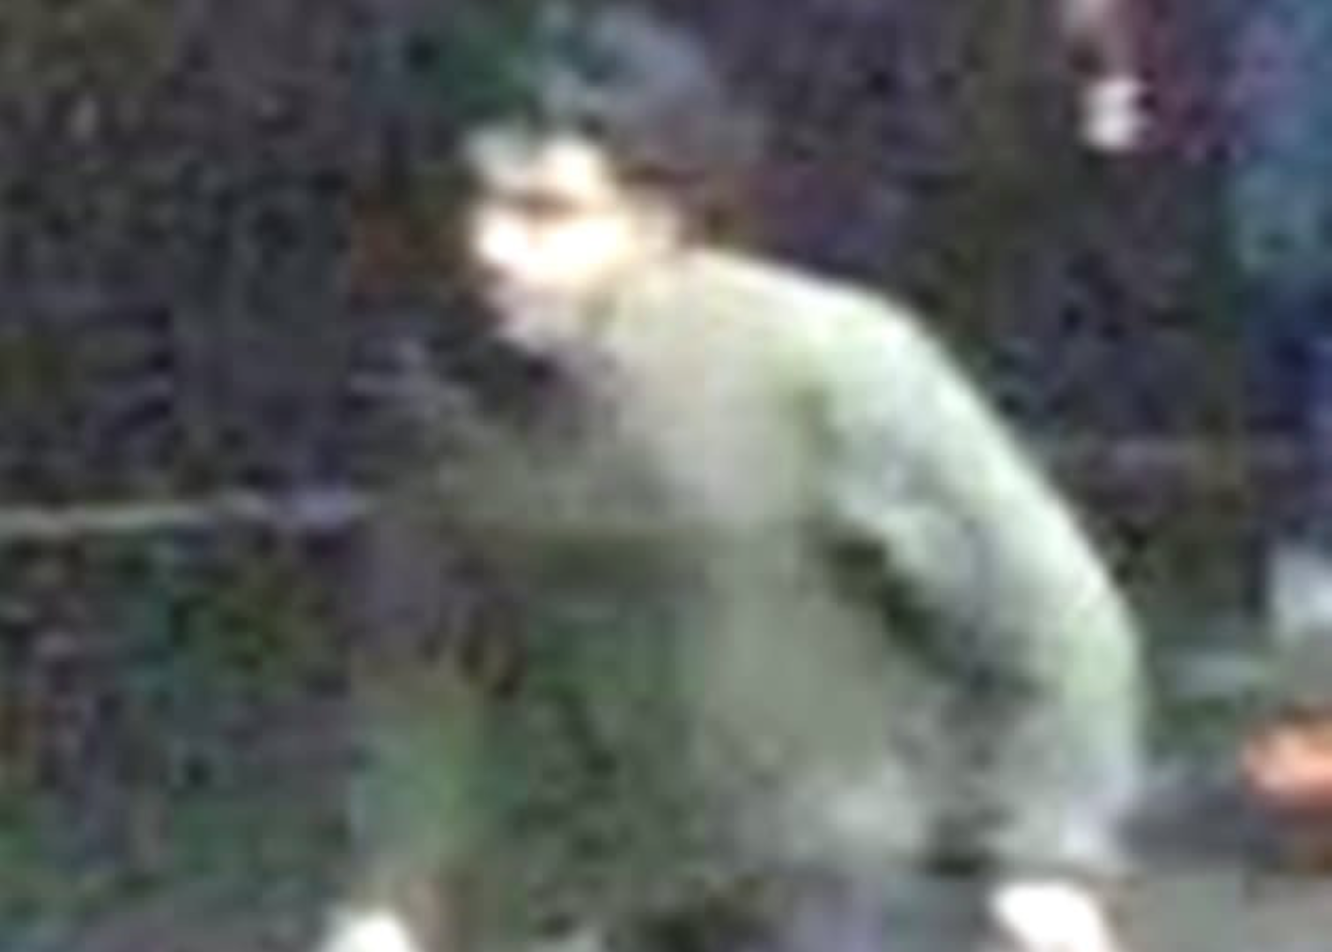 Man wanted by Met Police - Hayes